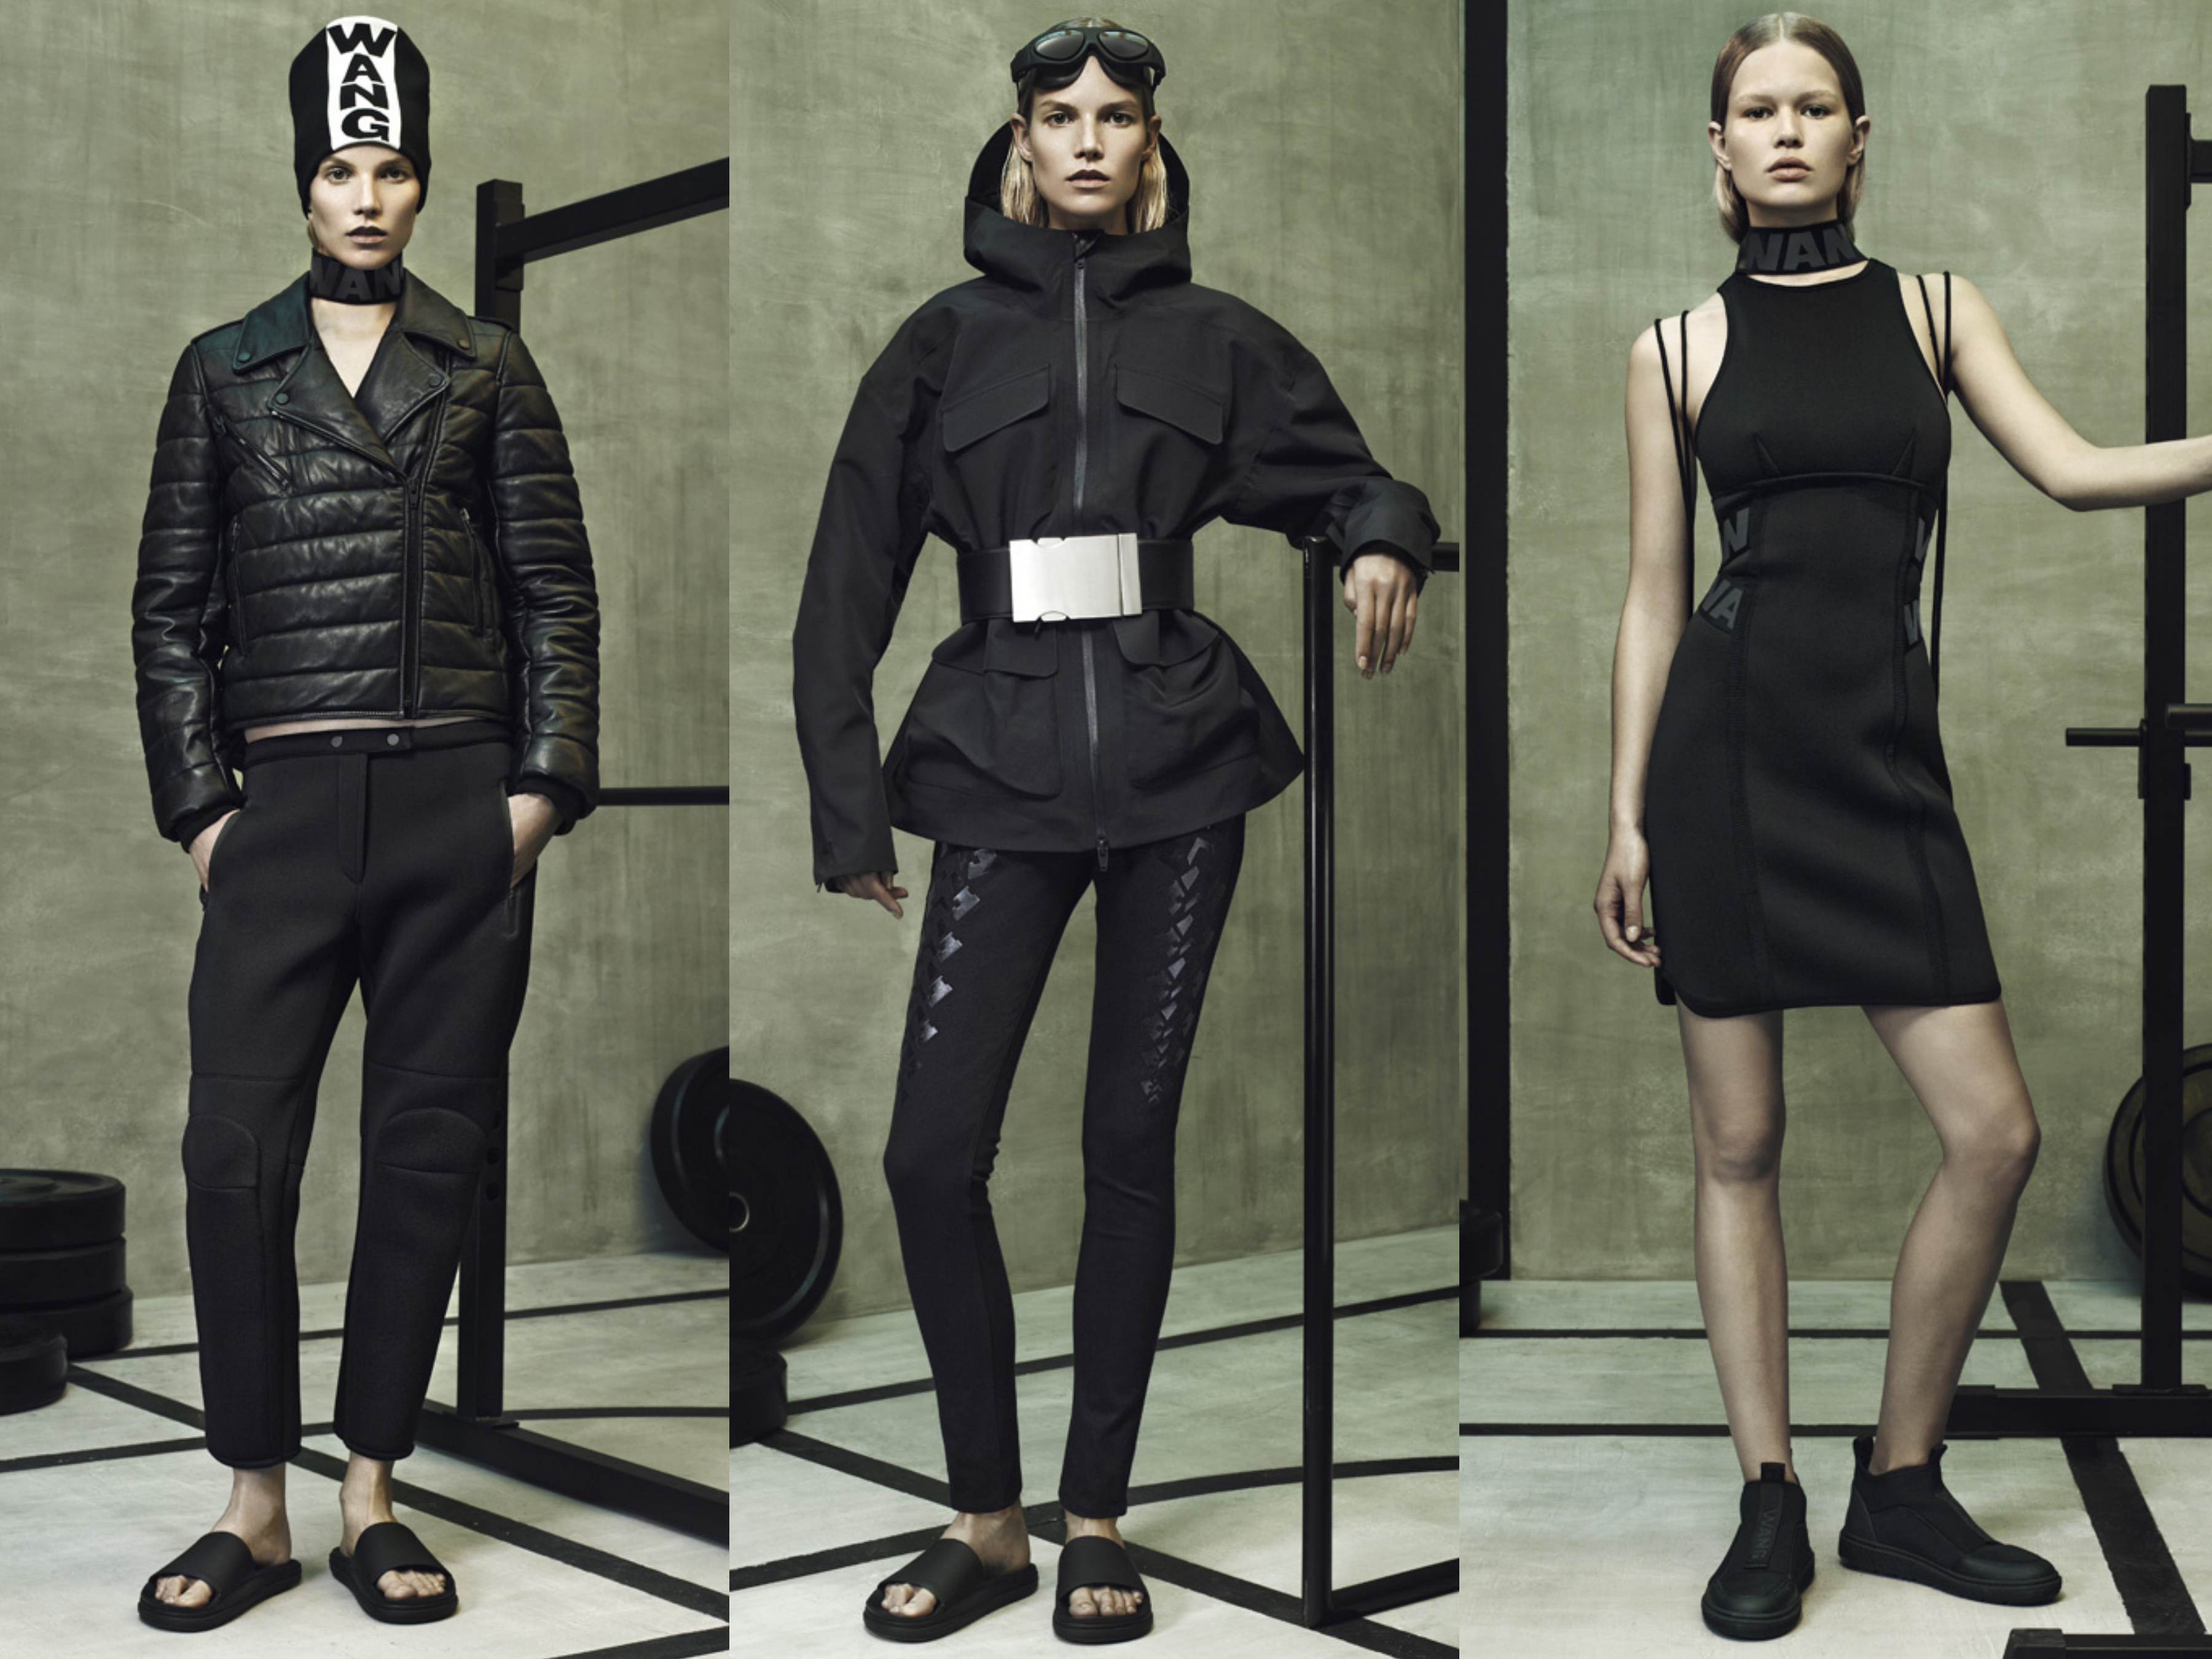 alexander wang x hm outfits